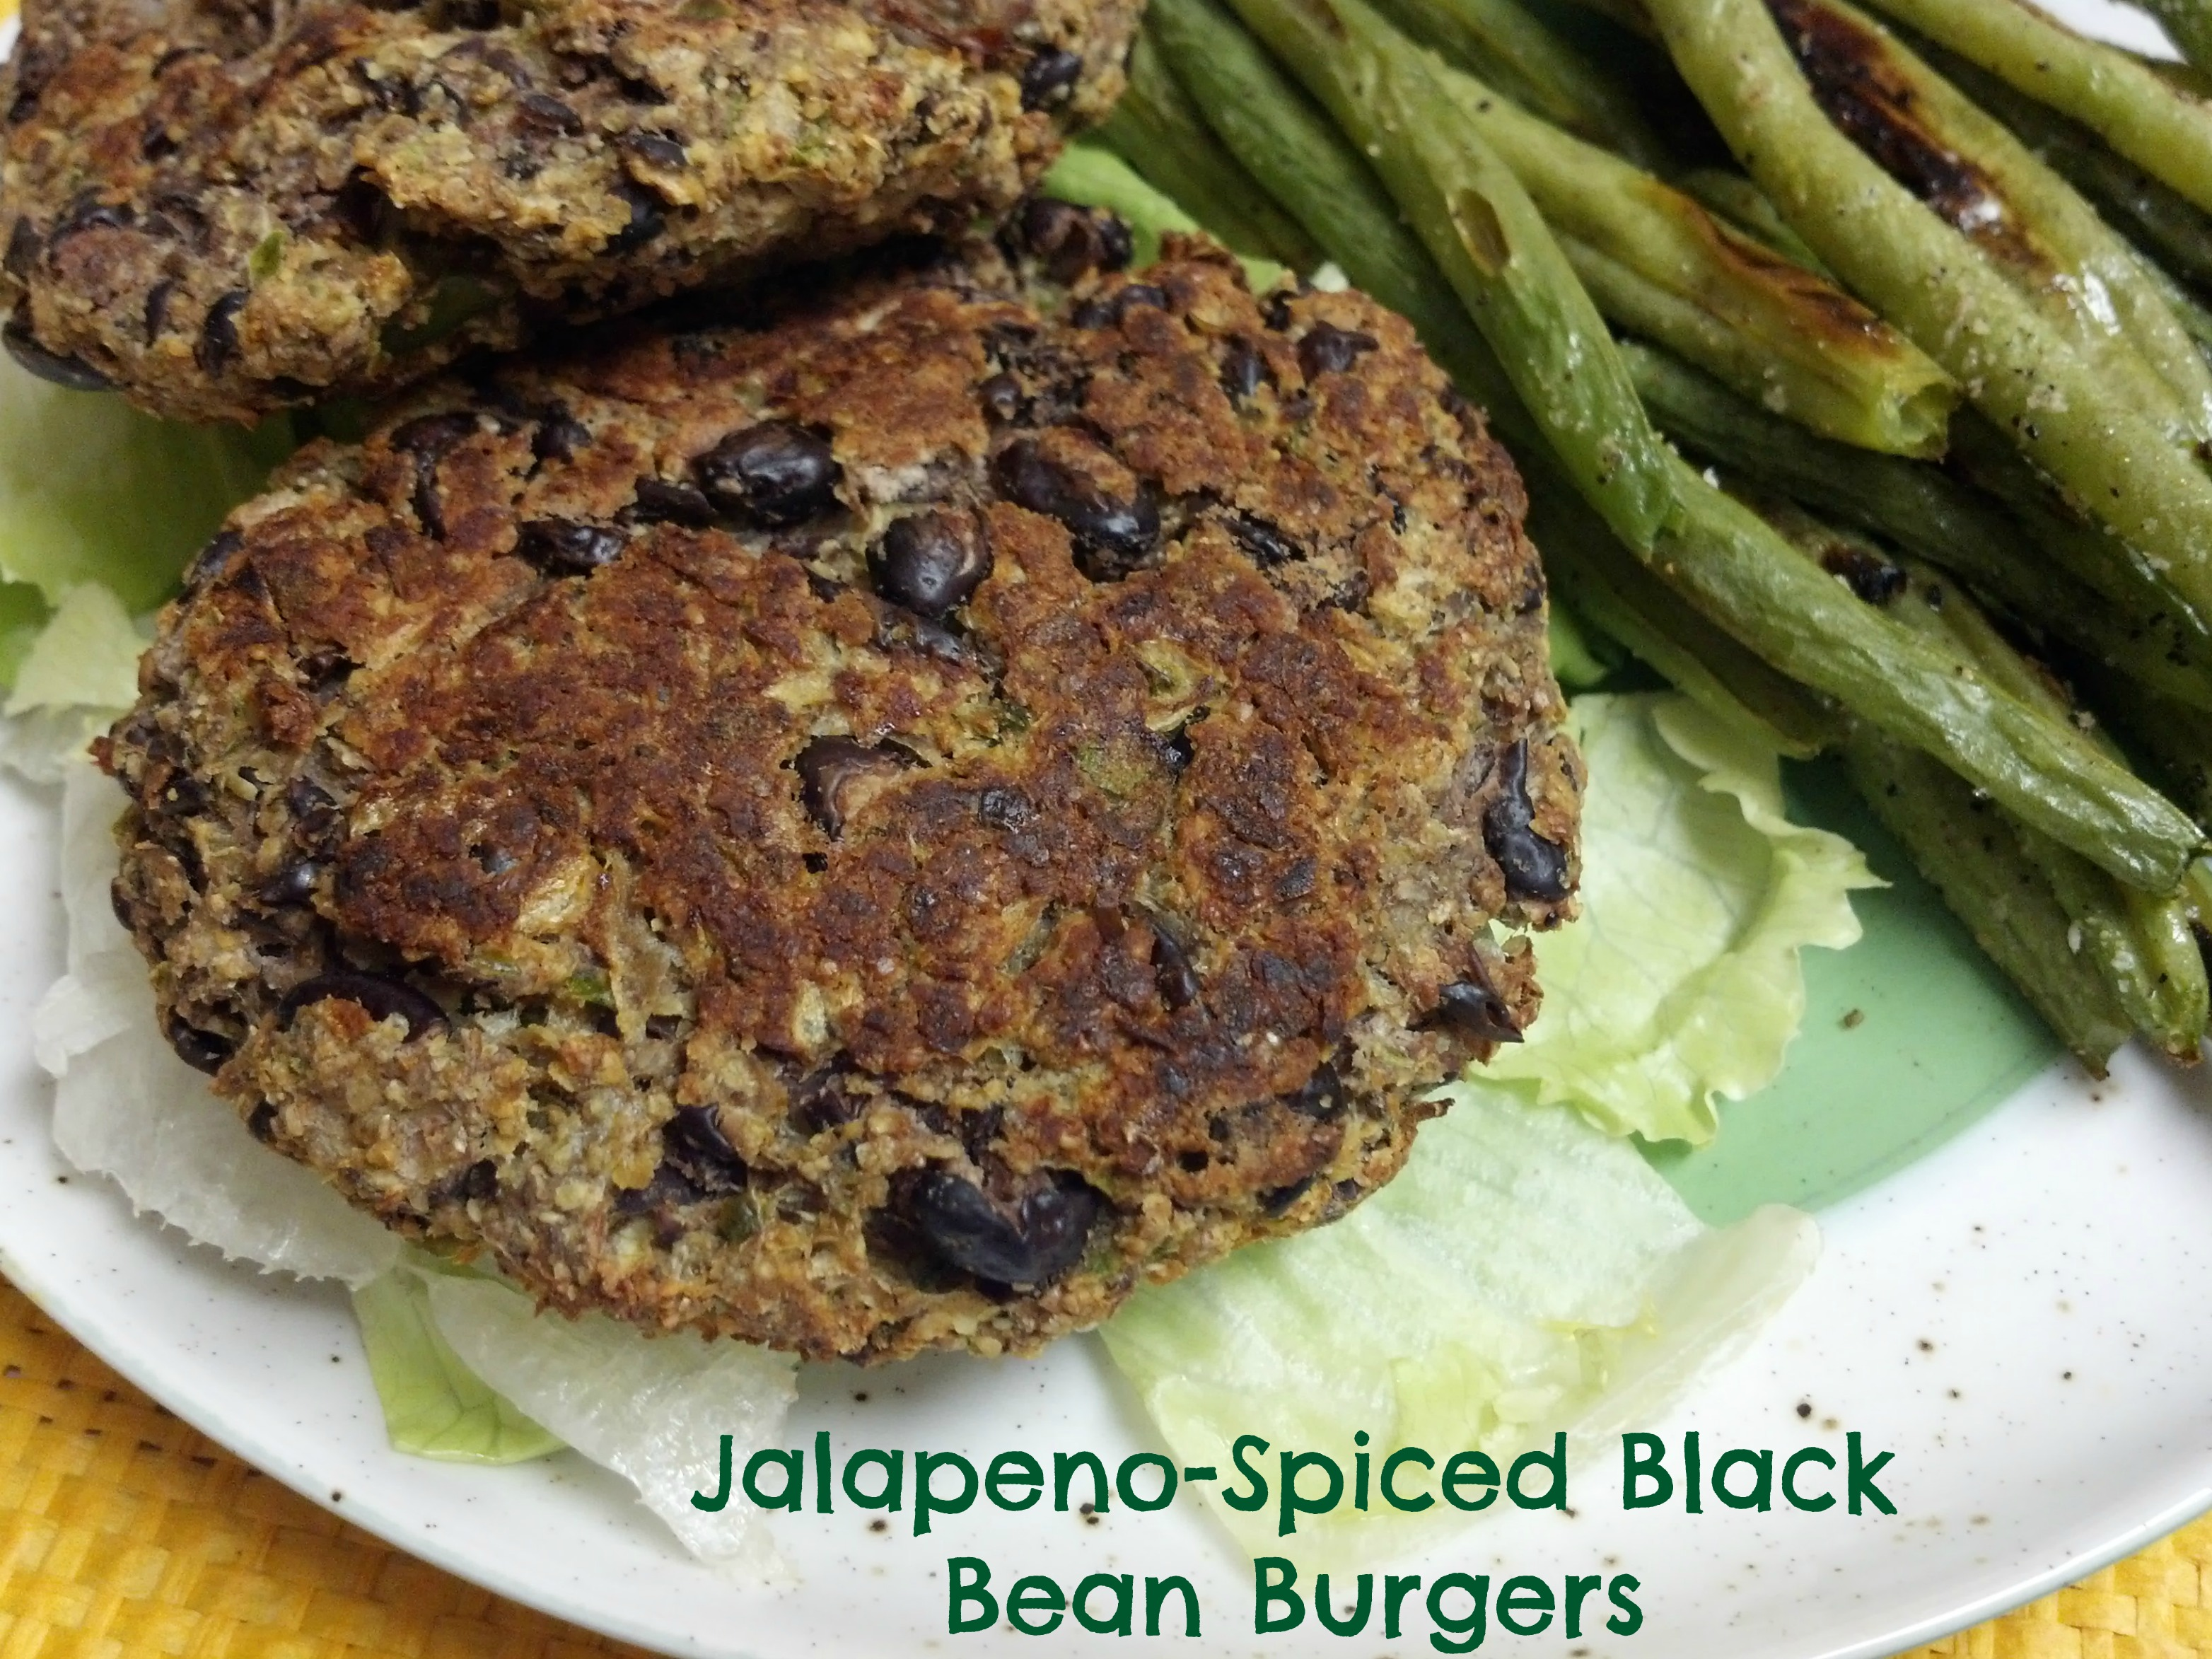 ... Wine Turns 1!: Featuring Jalapeno-Spiced Black Bean Burgers